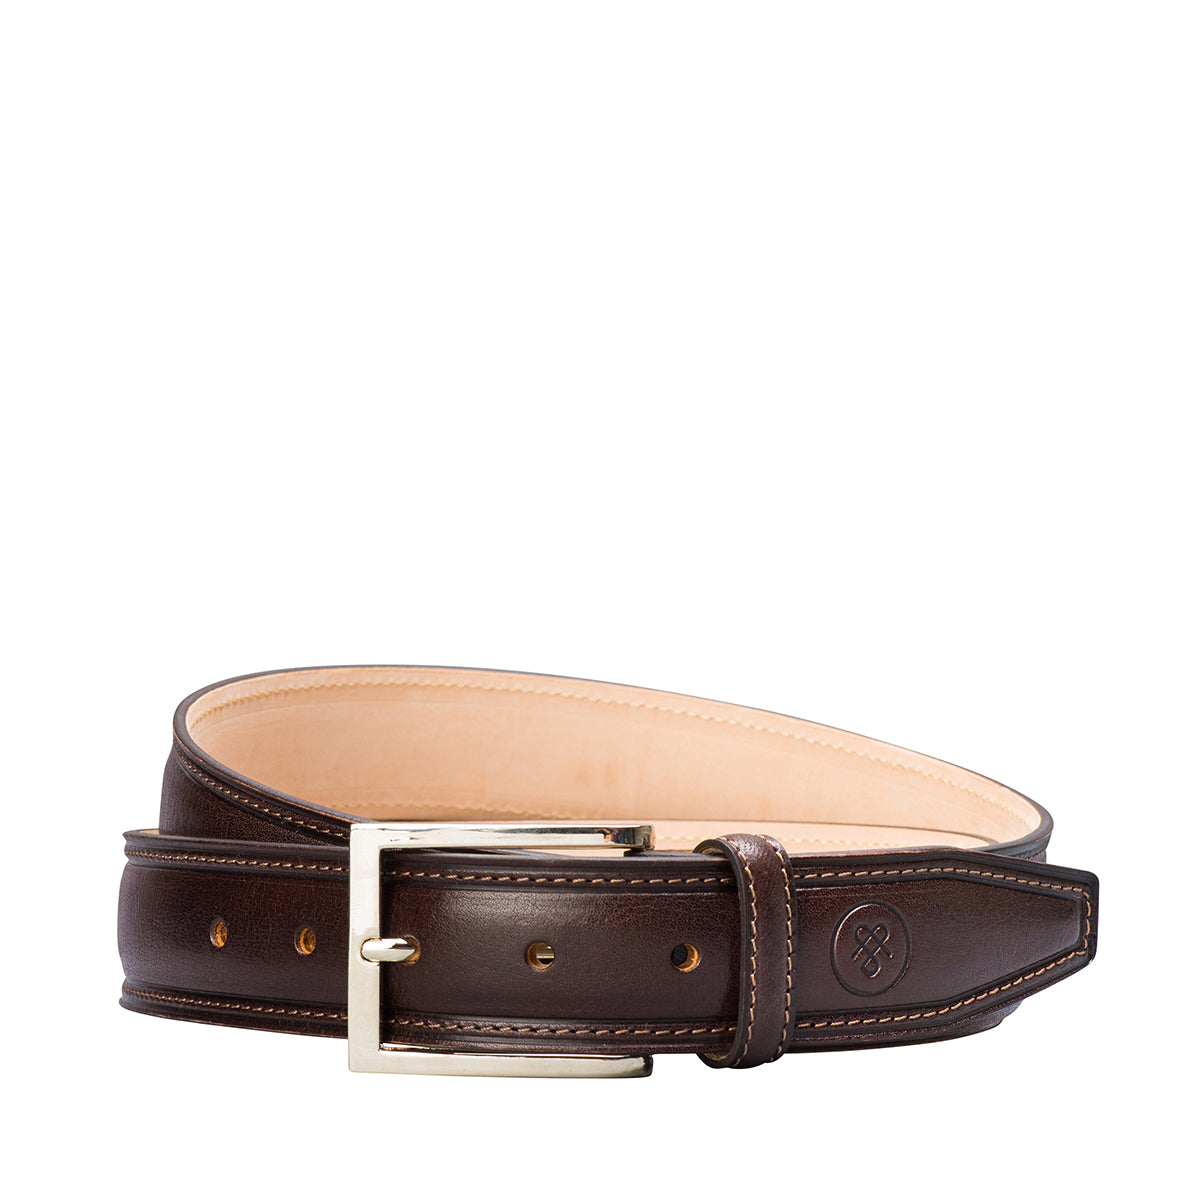 Image 1 of the 'Franco' Chocolate Veg-Tanned Leather Handmade Belt